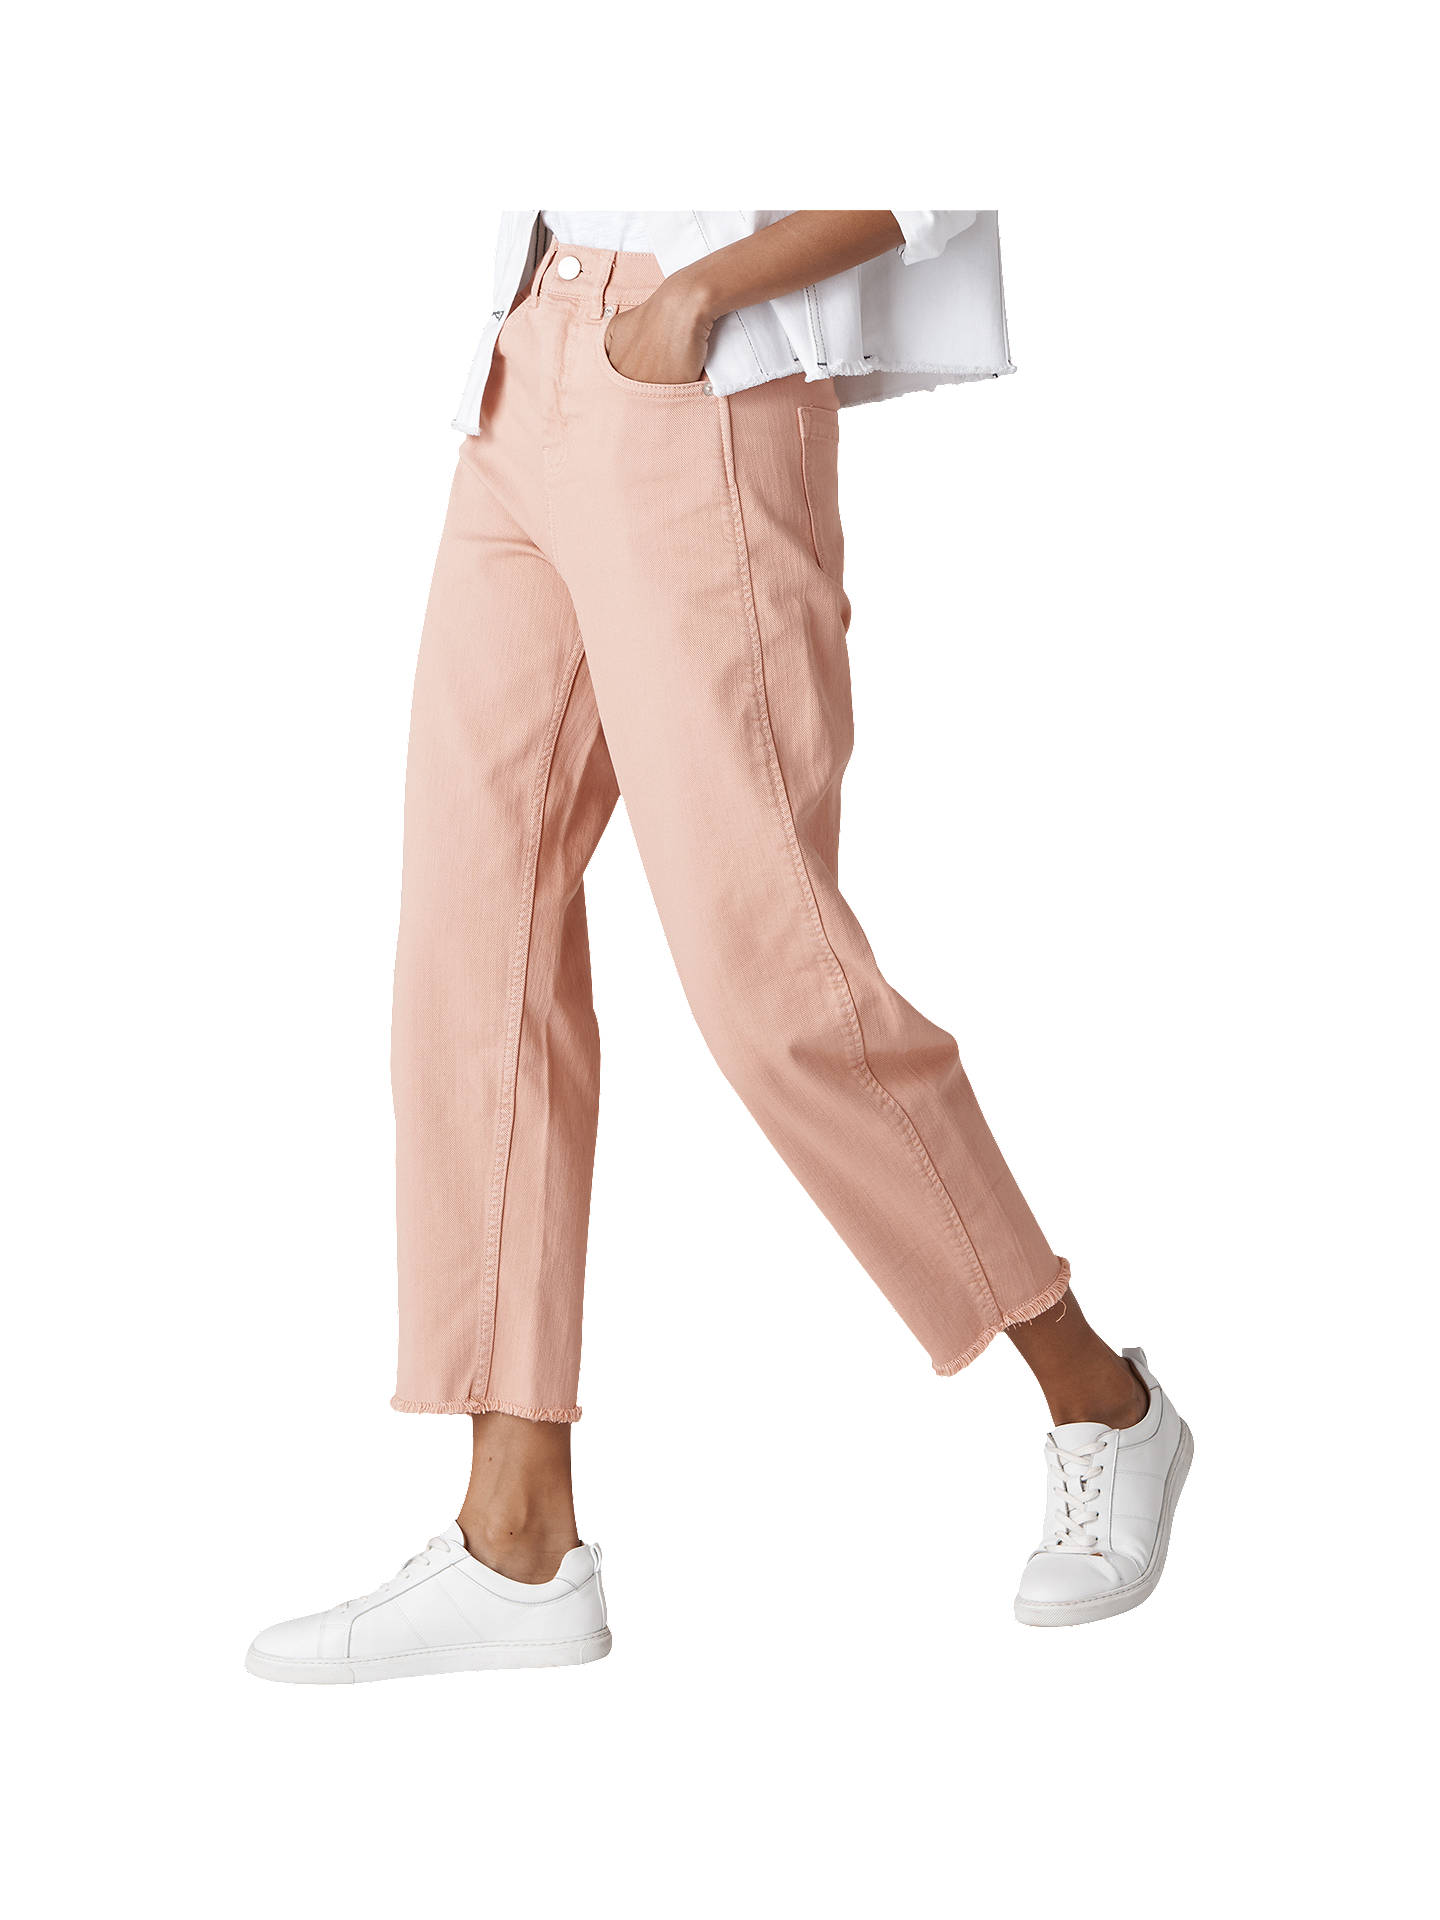 BuyWhistles High Waist Barrel Leg Jeans, Pale Pink, 28 Online at johnlewis.com